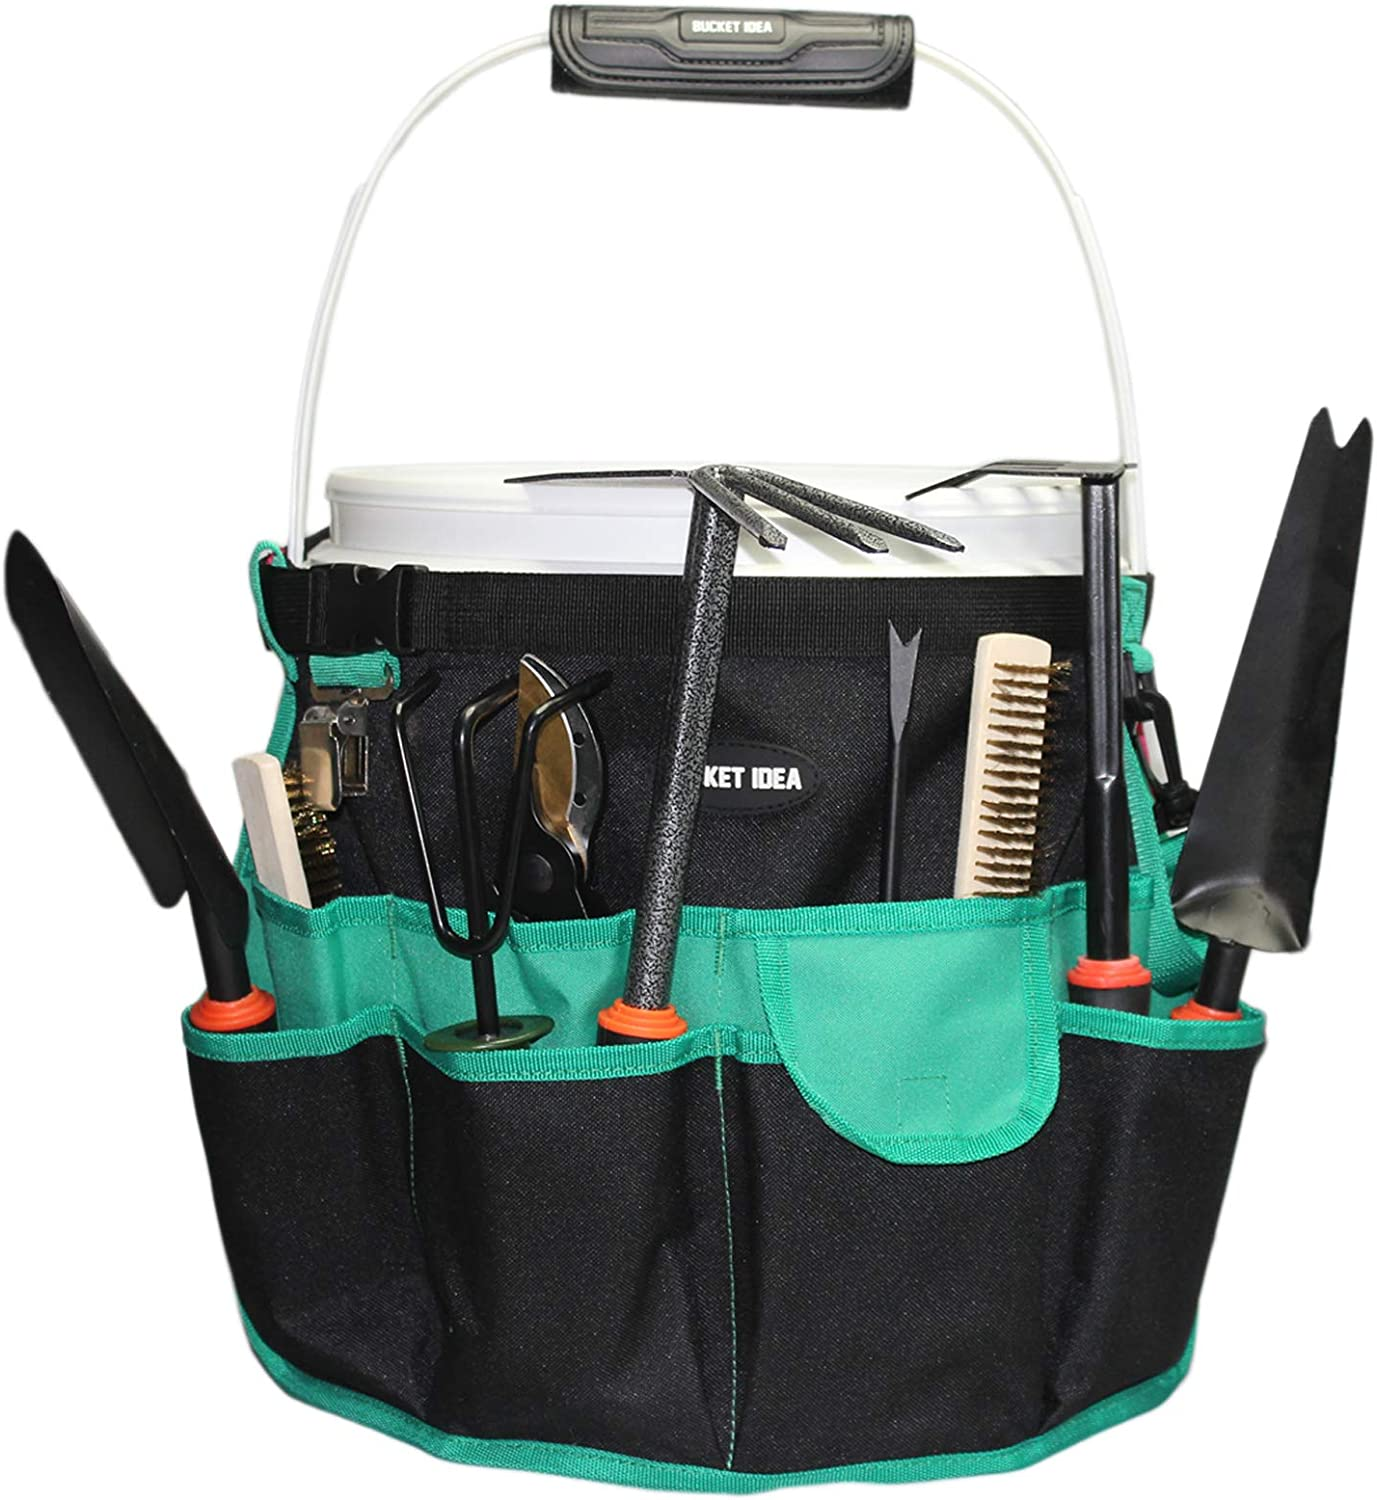 Bucket Idea Bucket Tool Organizer for Garden Tools Fit 3.5 to 5 Gallon Bucket (Green)